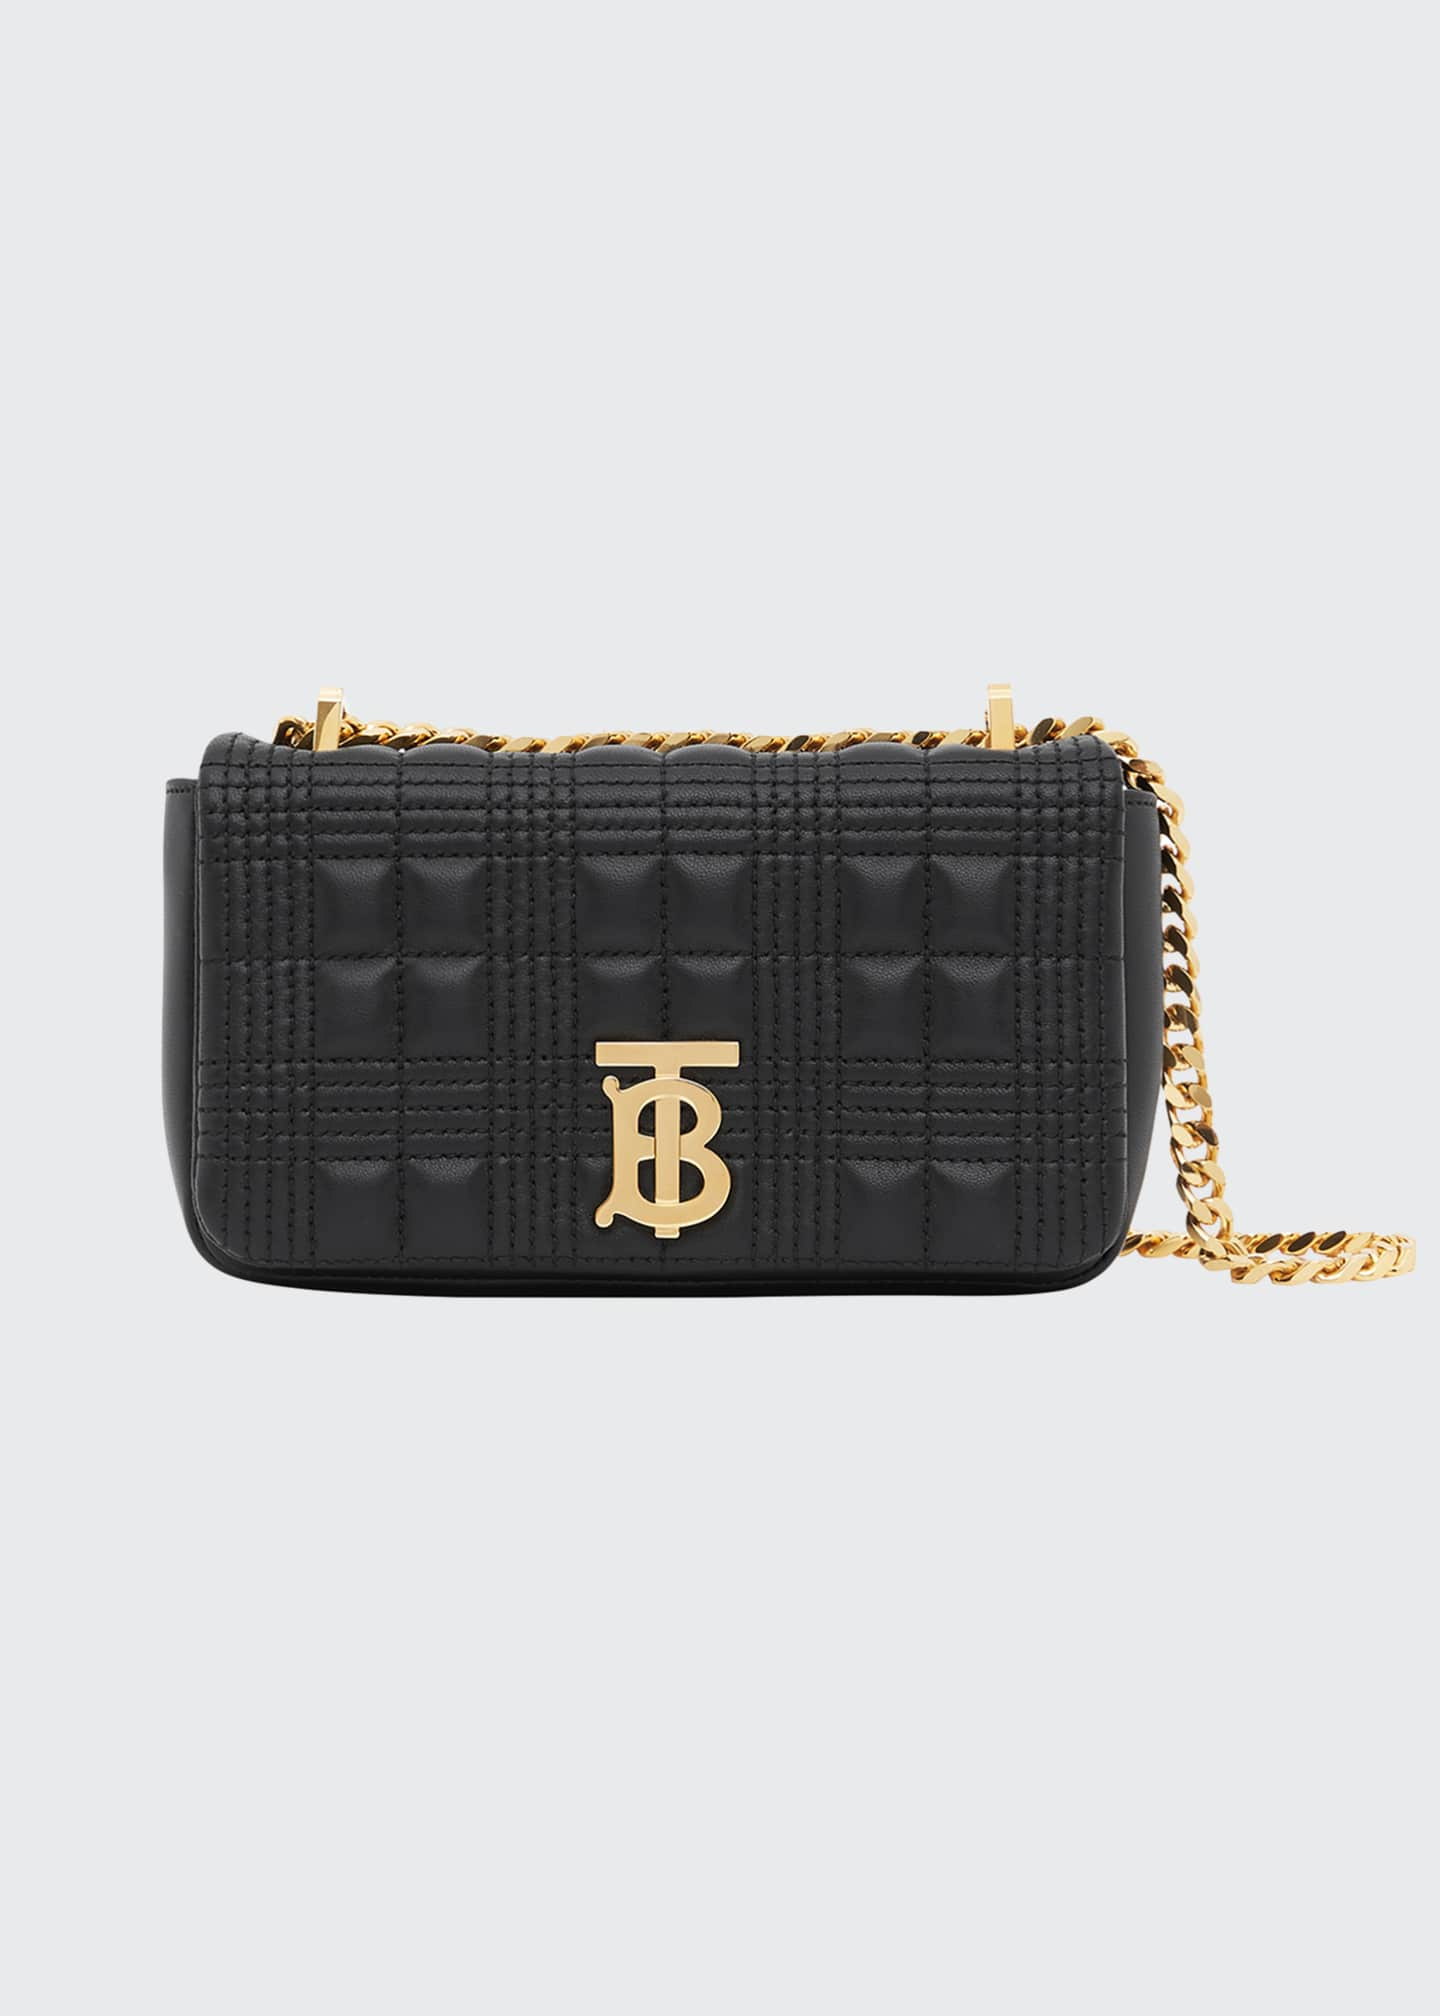 Burberry Lola Quilted Leather Crossbody Bag